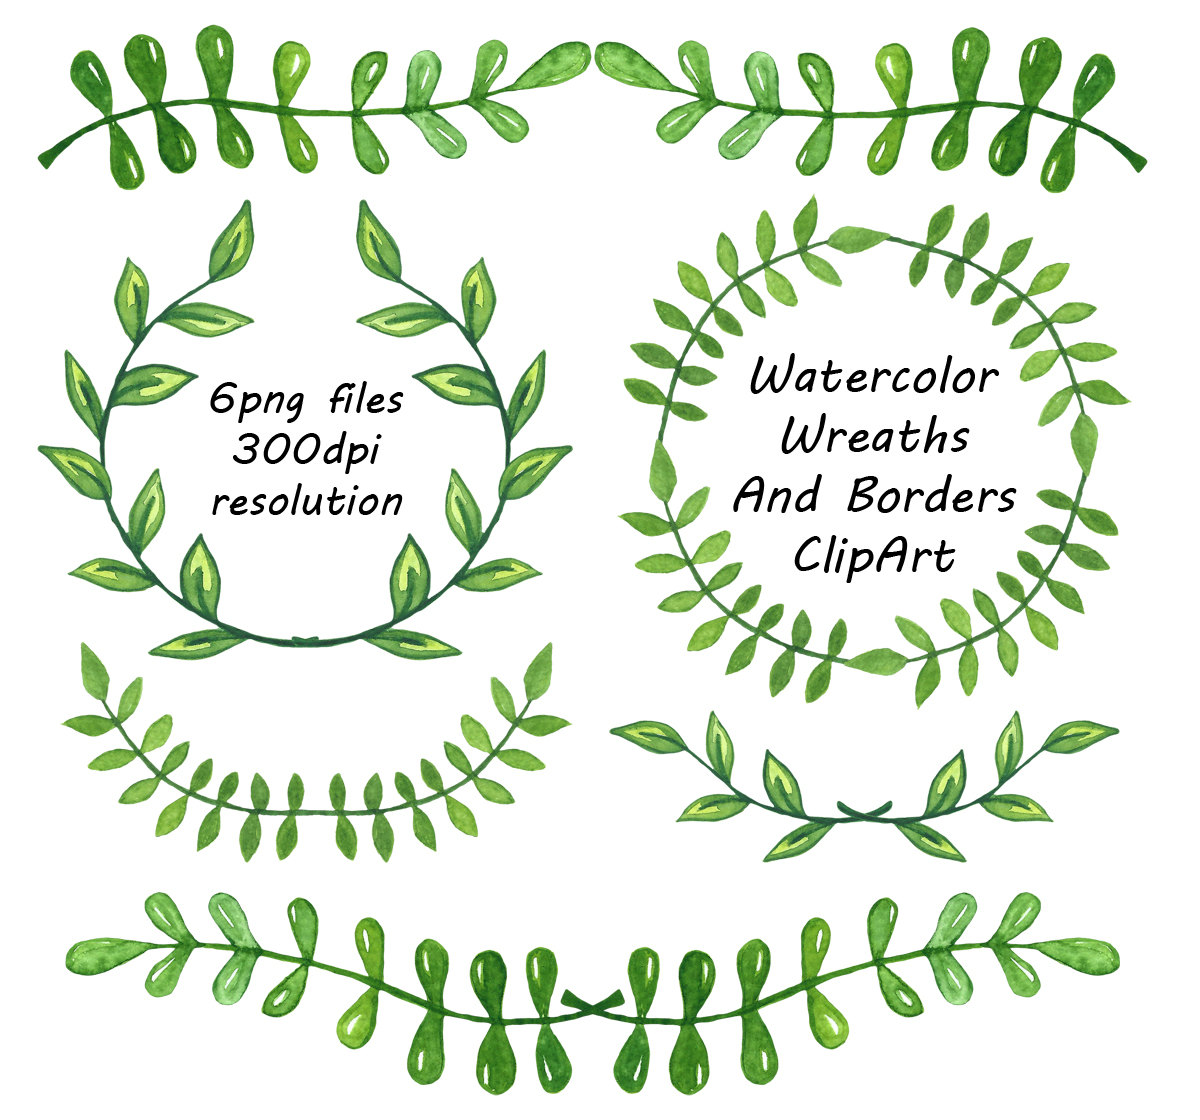 Watercolor Wreaths And Borders clipart Laurel Wreath laurel.